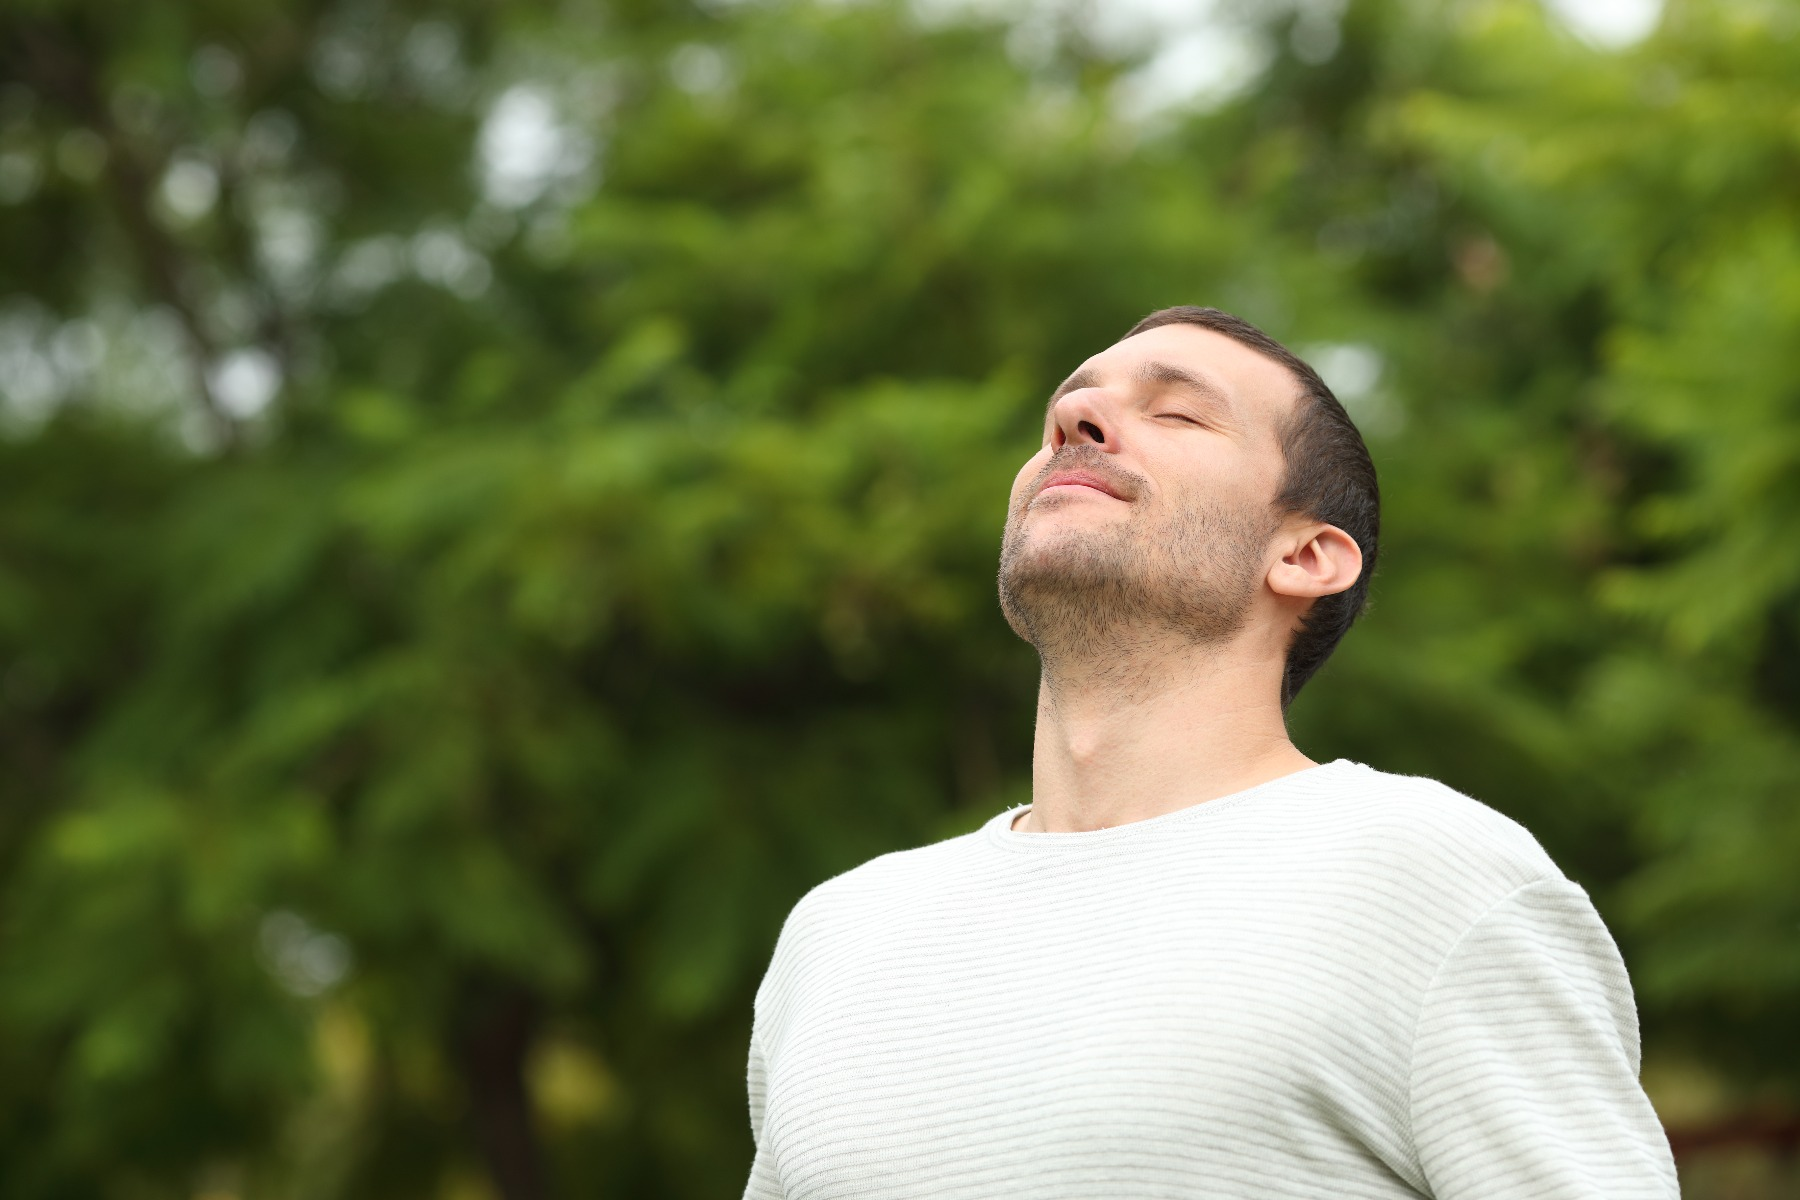 Man standing outside, looking up towards the sky peacefully with a smile on his face